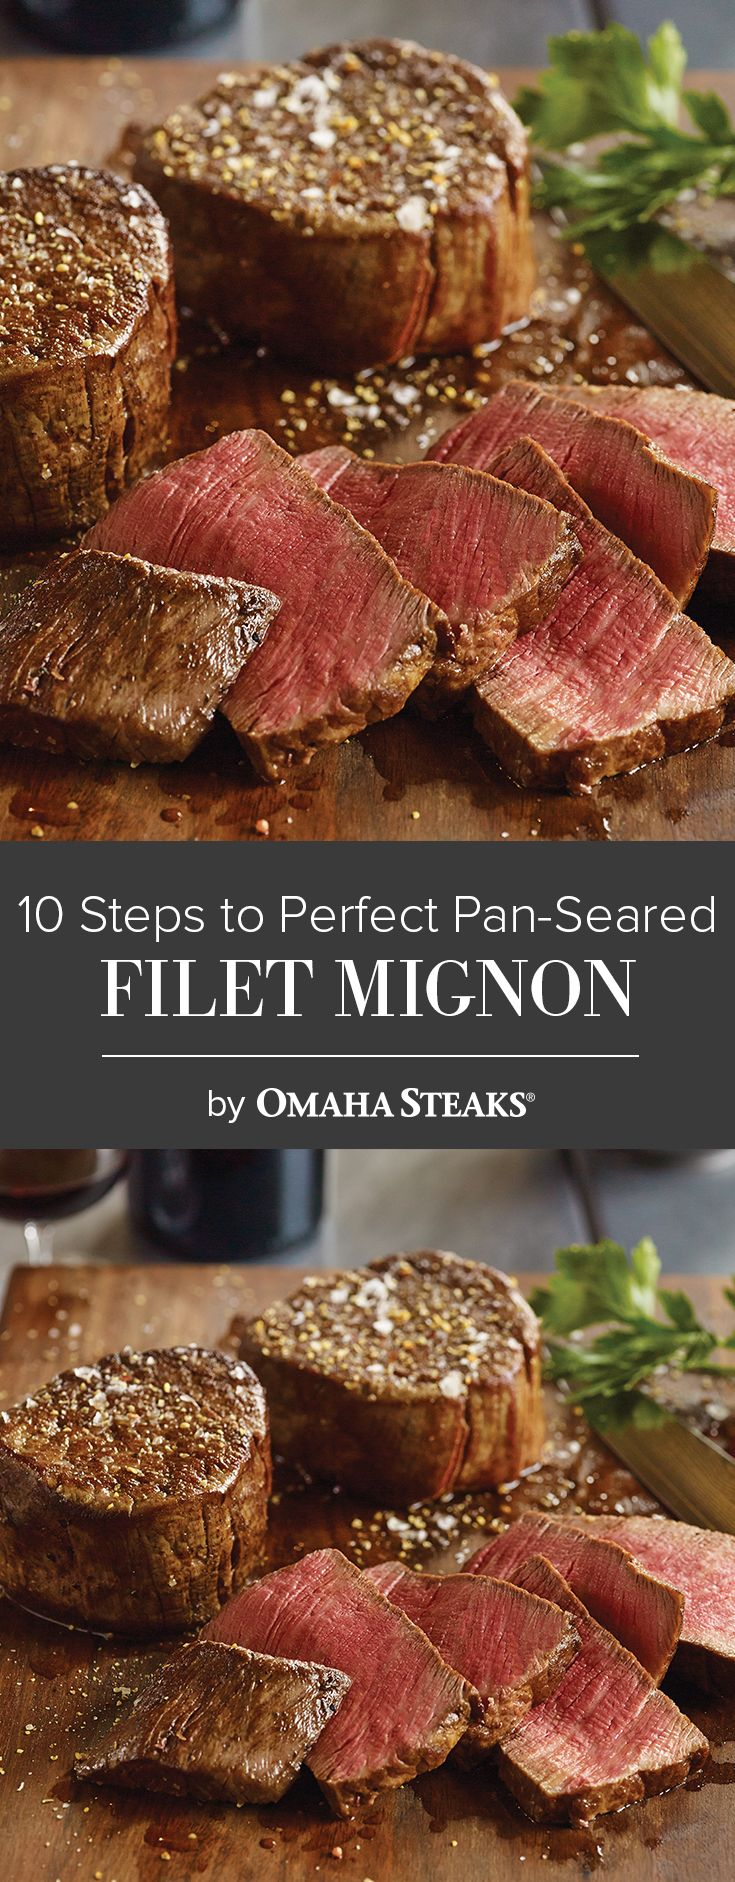 10 Steps to Perfect Pan-Seared Filet Mignon